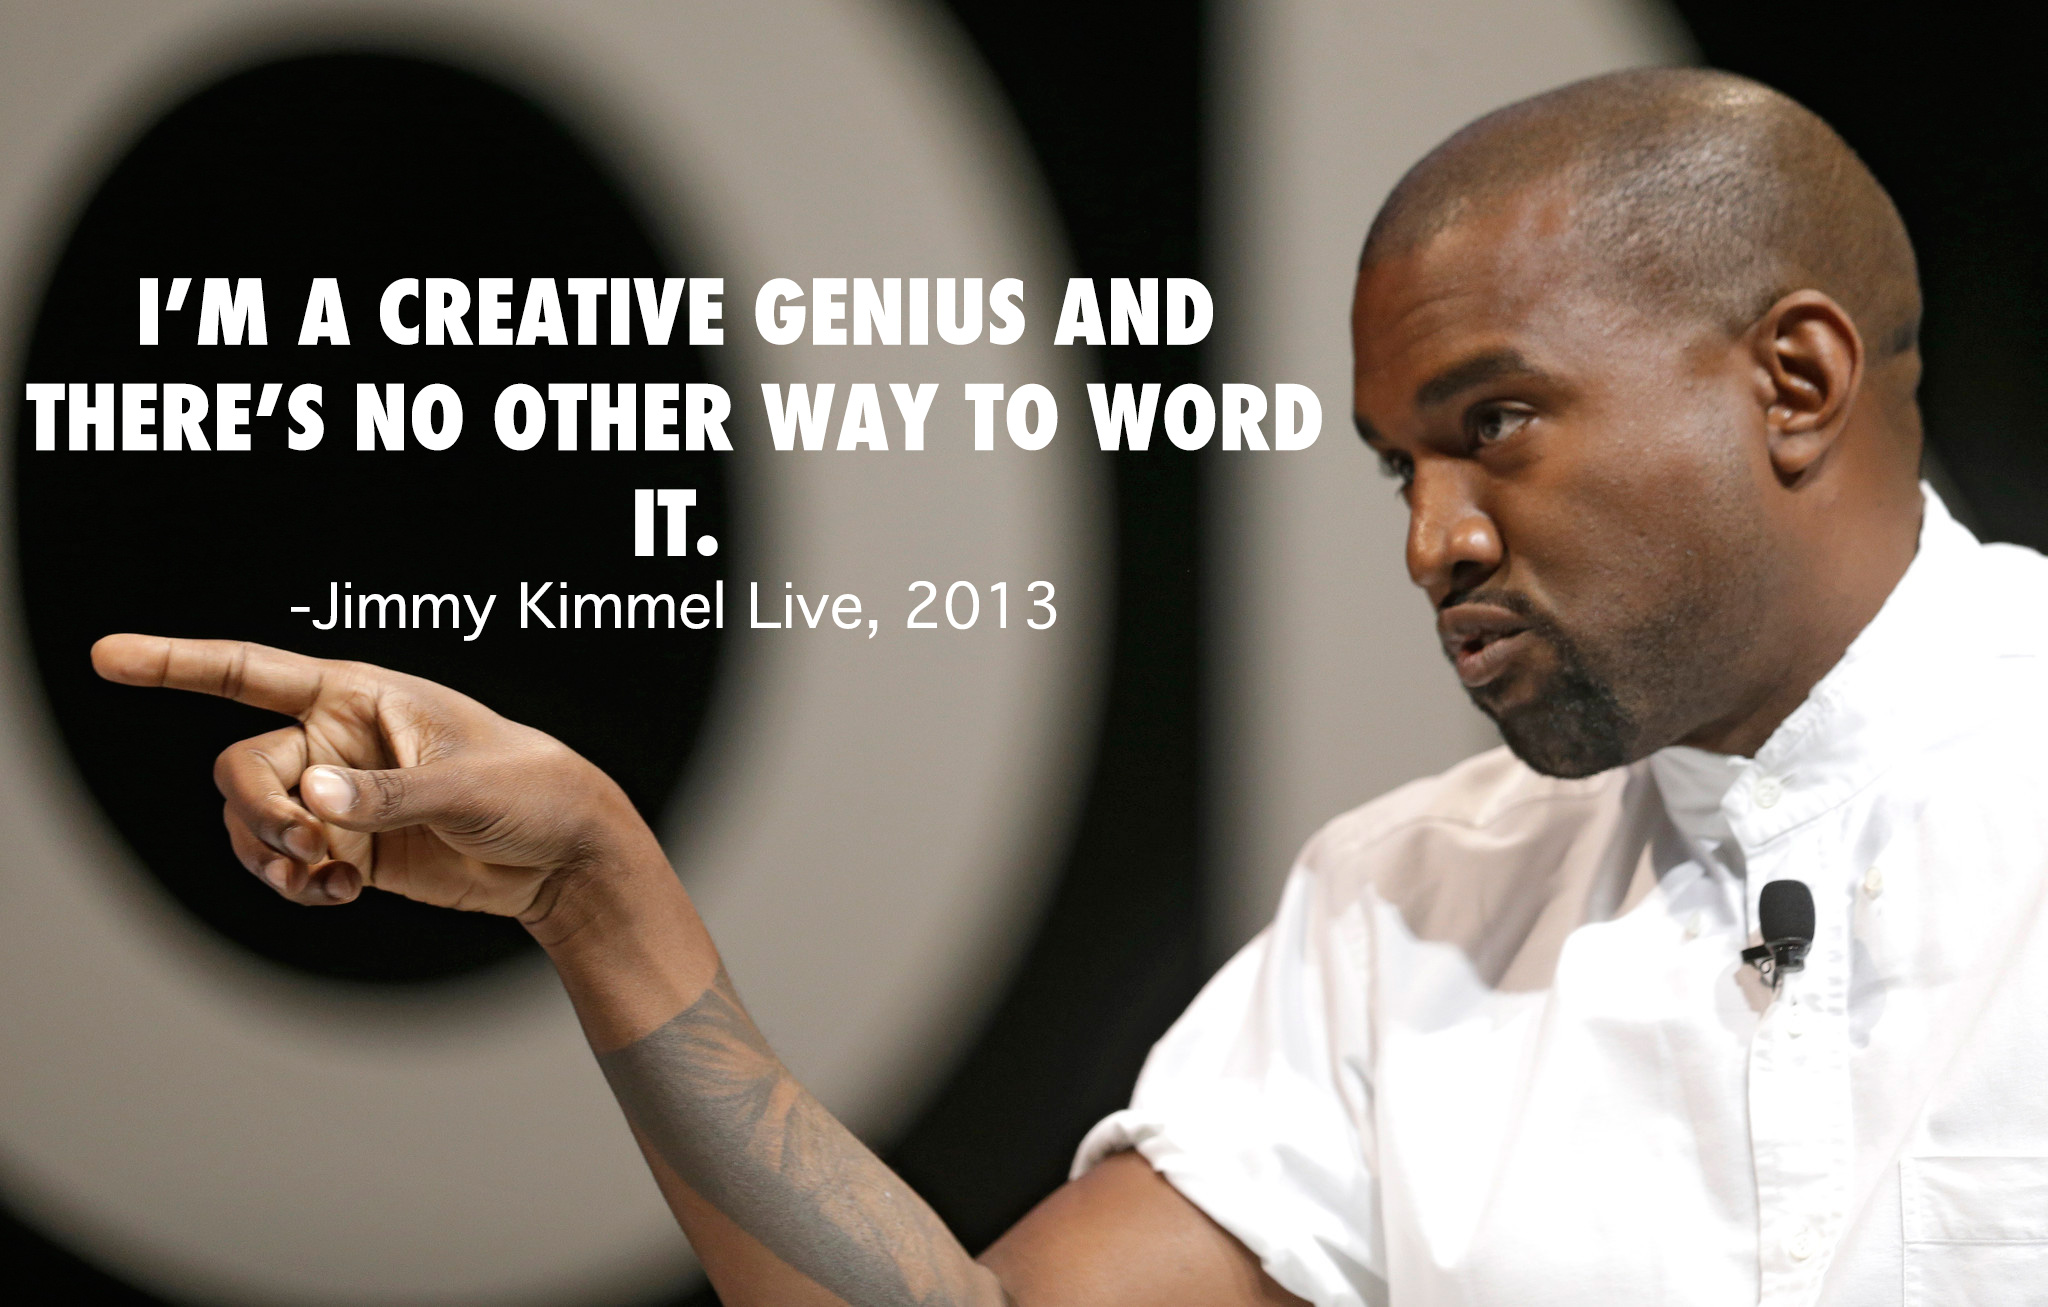 kanye west quotes about himself - photo #1